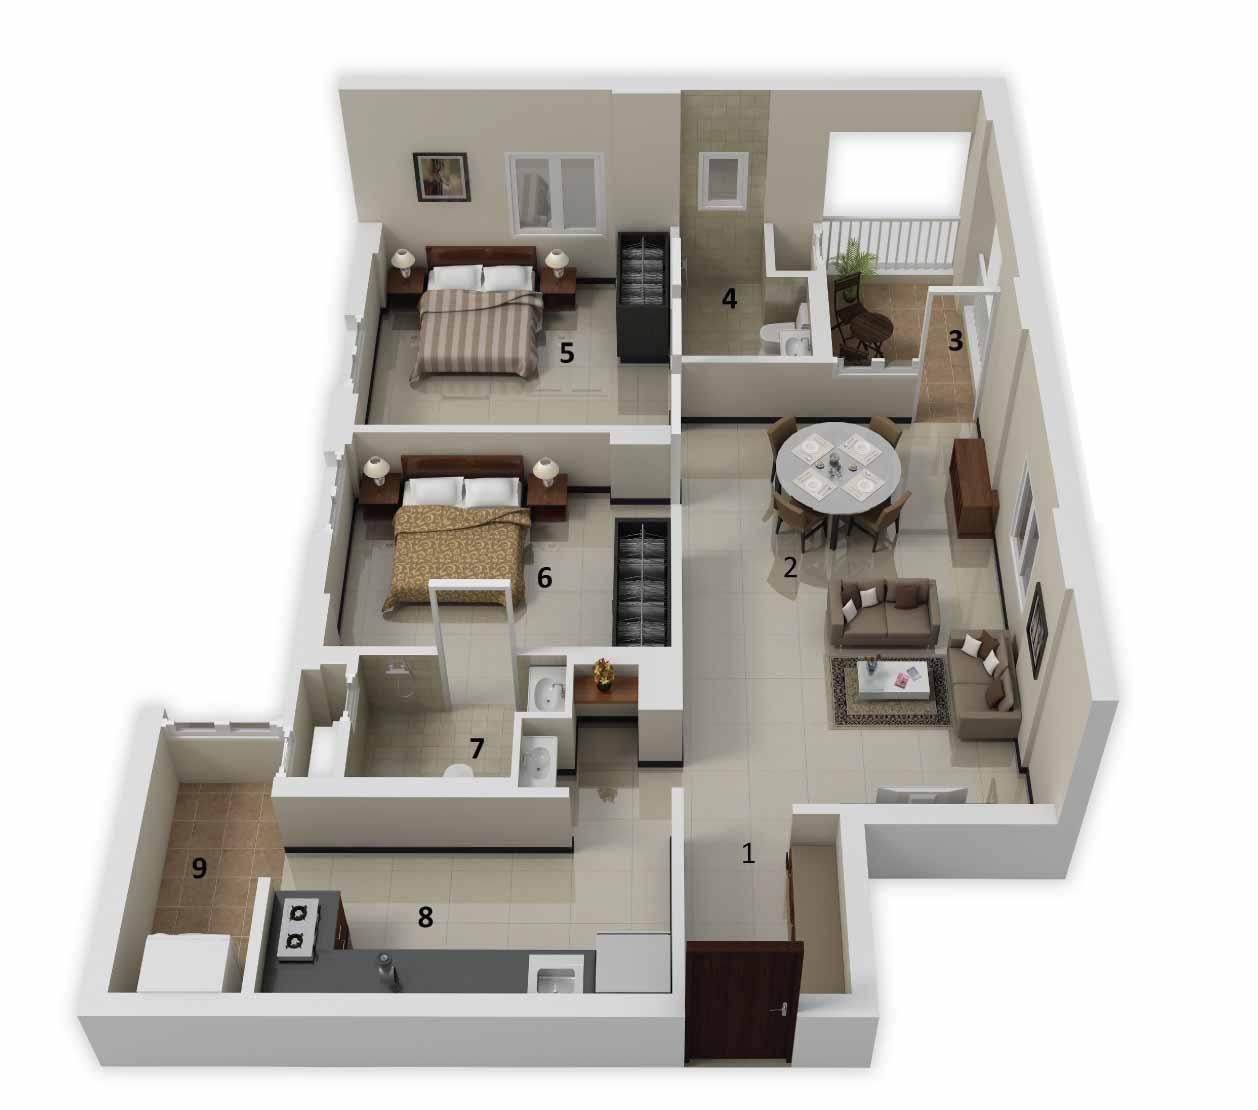 25 more 2 bedroom floor plans bedroom simple 2 house